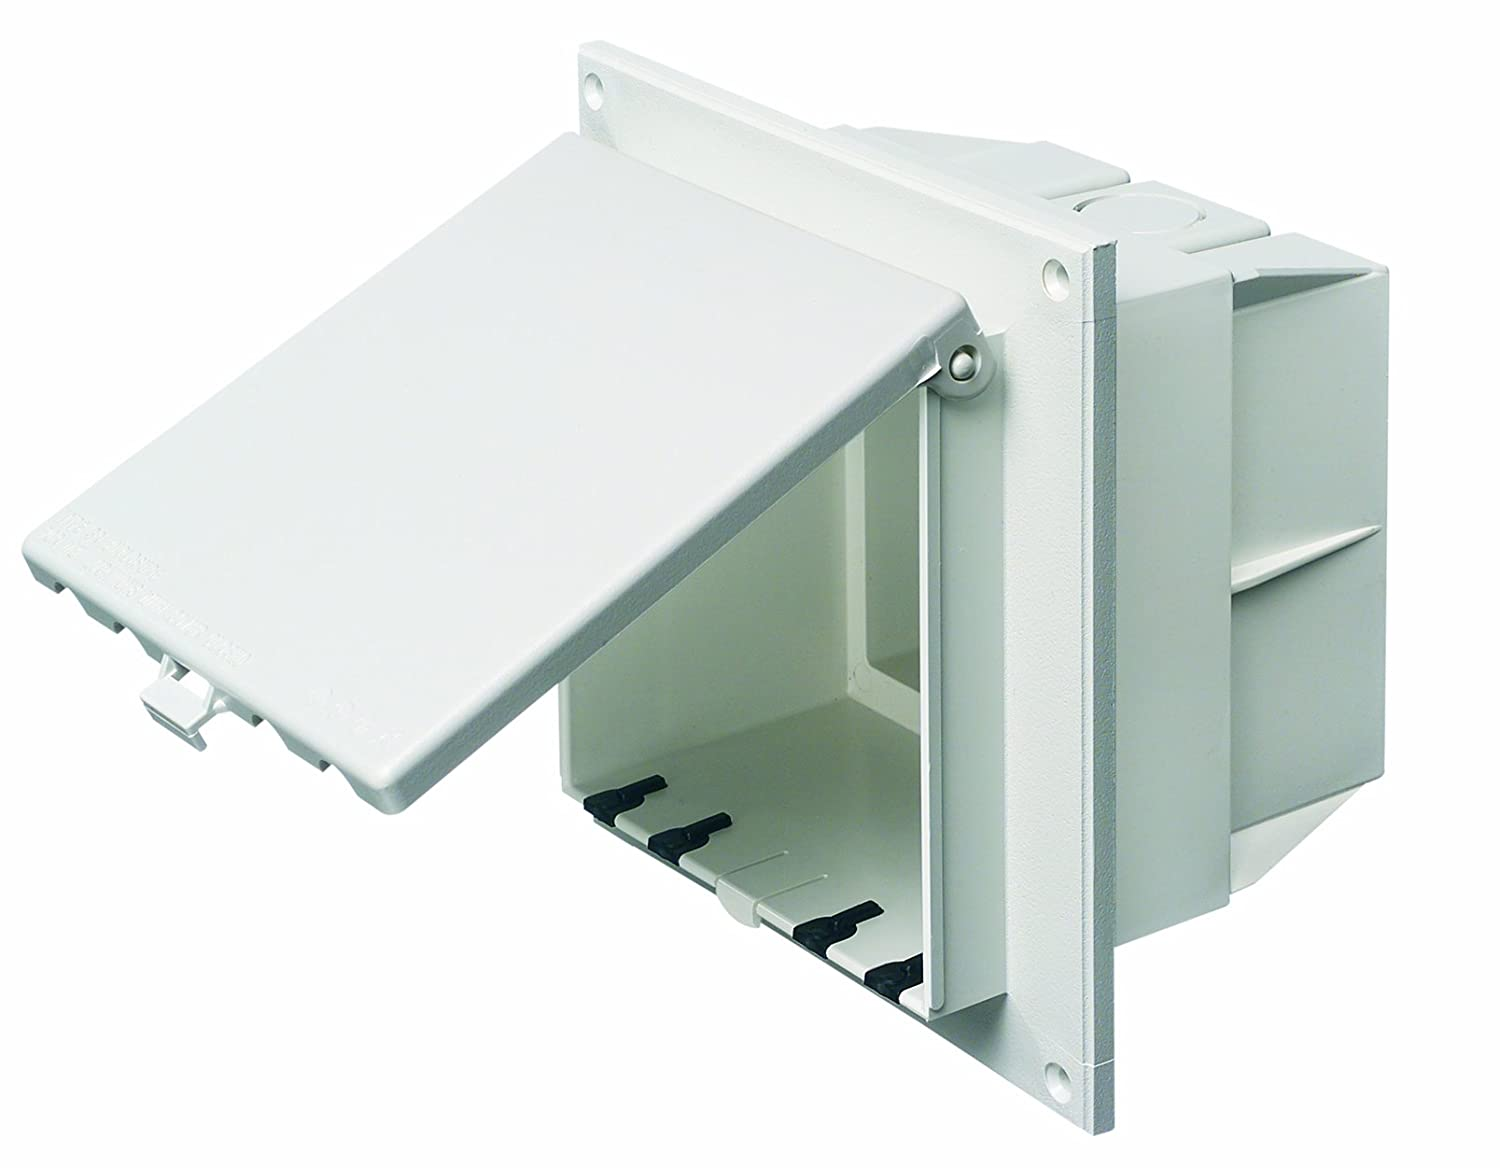 Outdoor Wiring Without Conduit Arlington Dbvr2w 1 Low Profile In Box Electrical With Weatherproof Cover For Flat Surfaces 2 Gang Vertical White Home Improvement